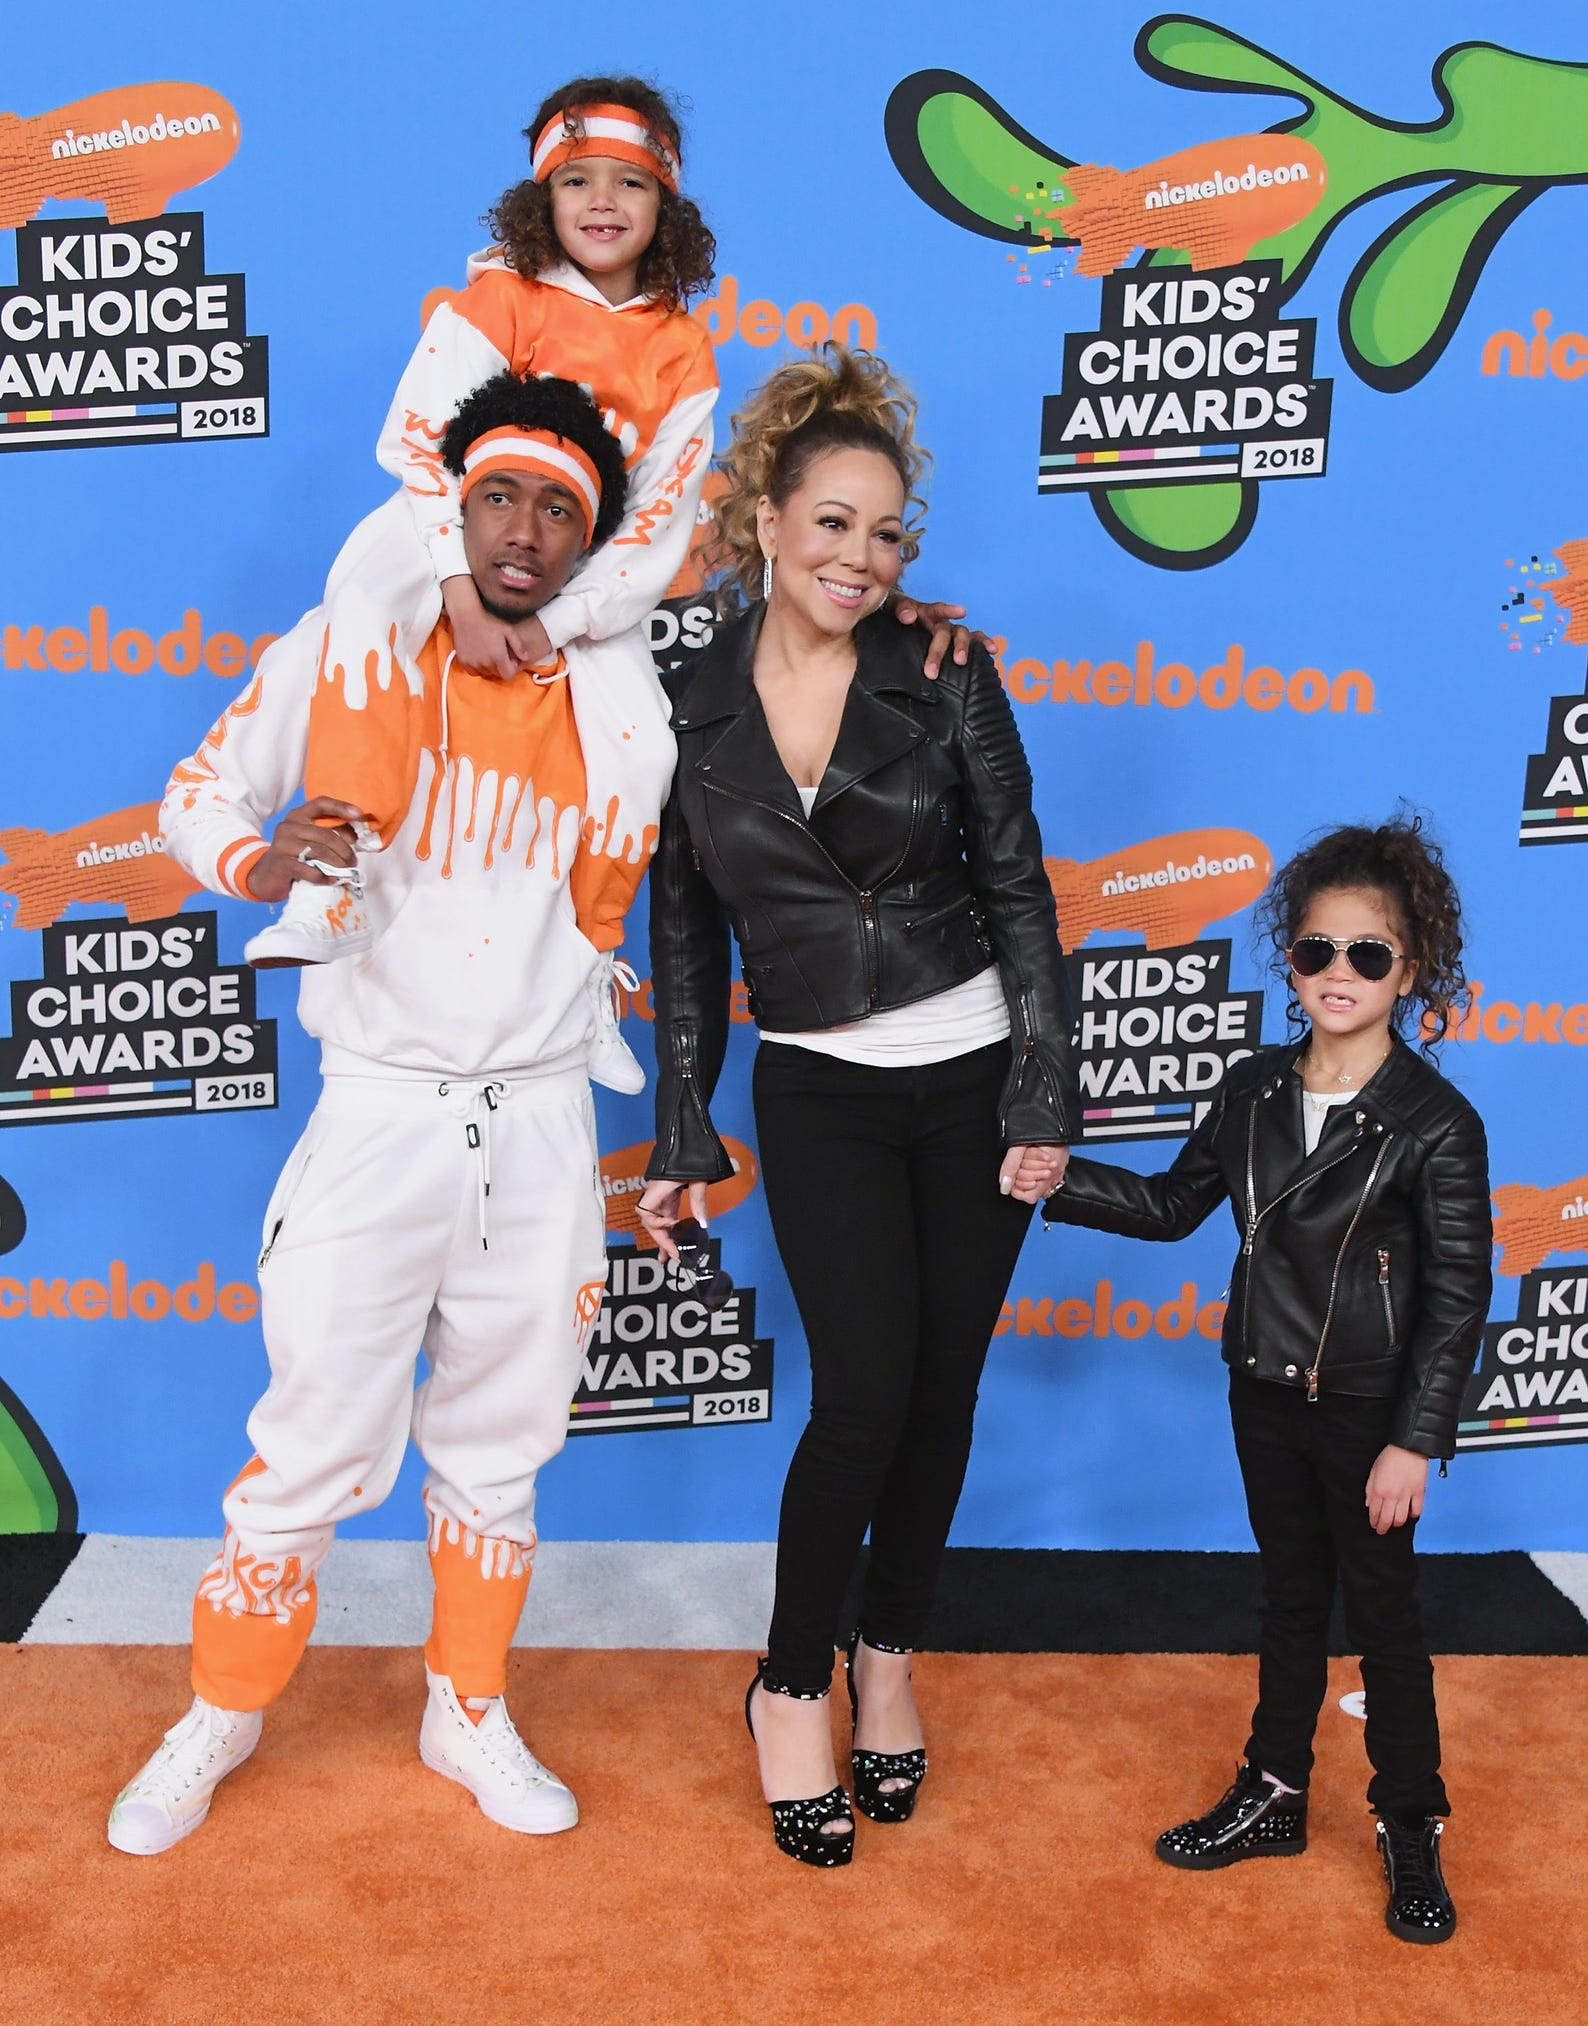 Kids' Choice Awards': Celebrities with their offspring